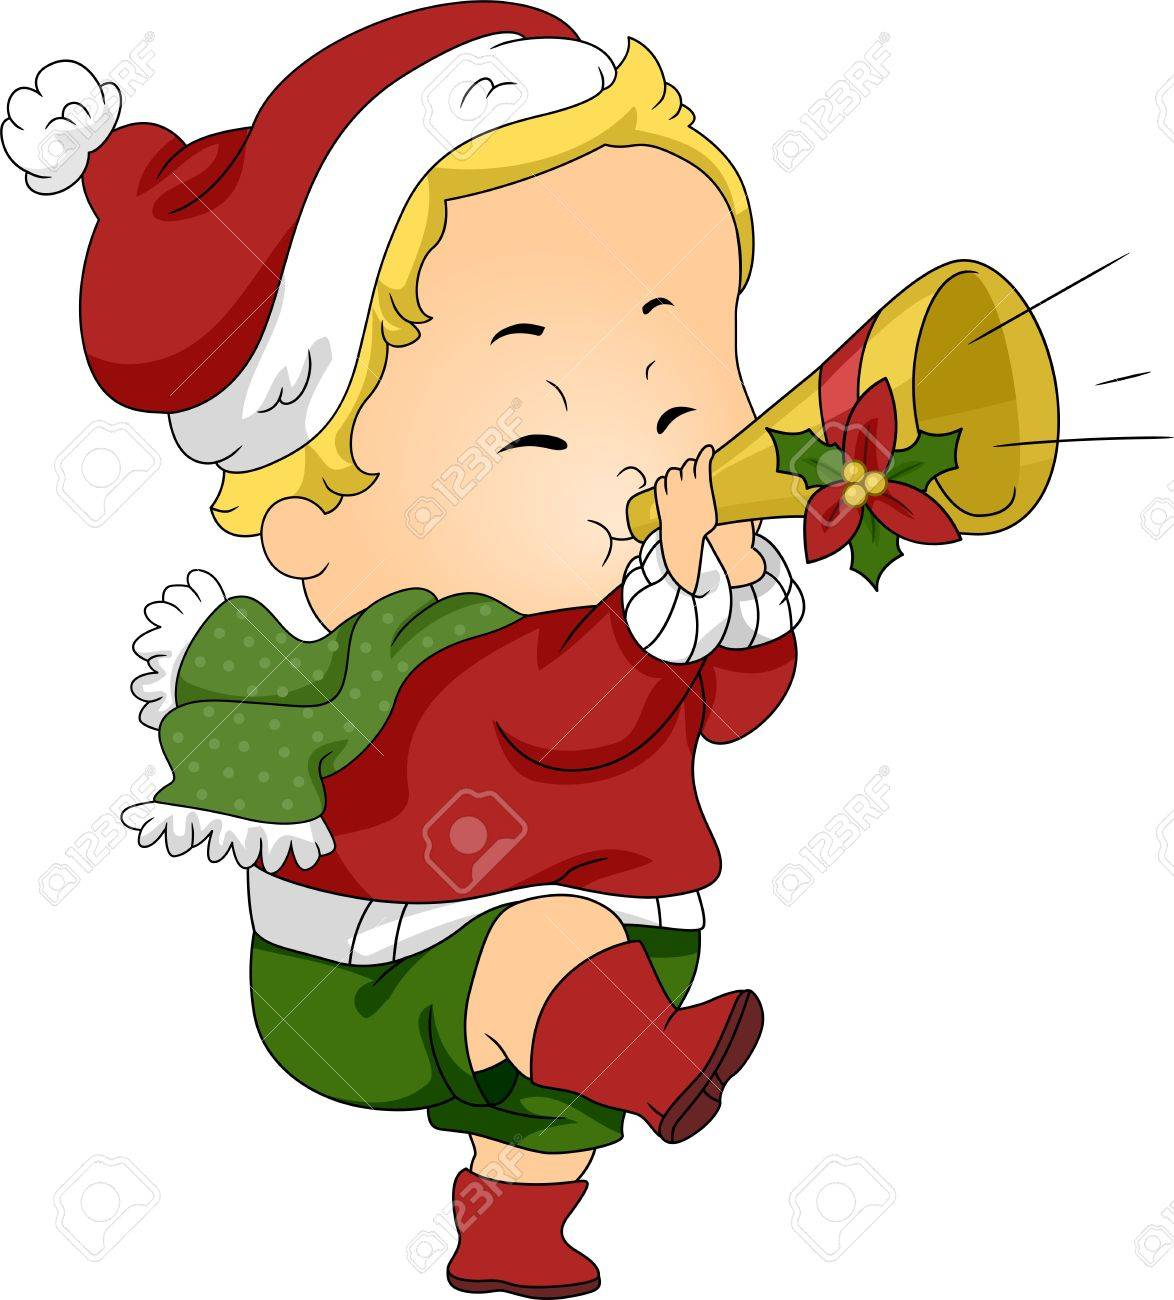 Christmas Trumpet Images.Stock Illustration